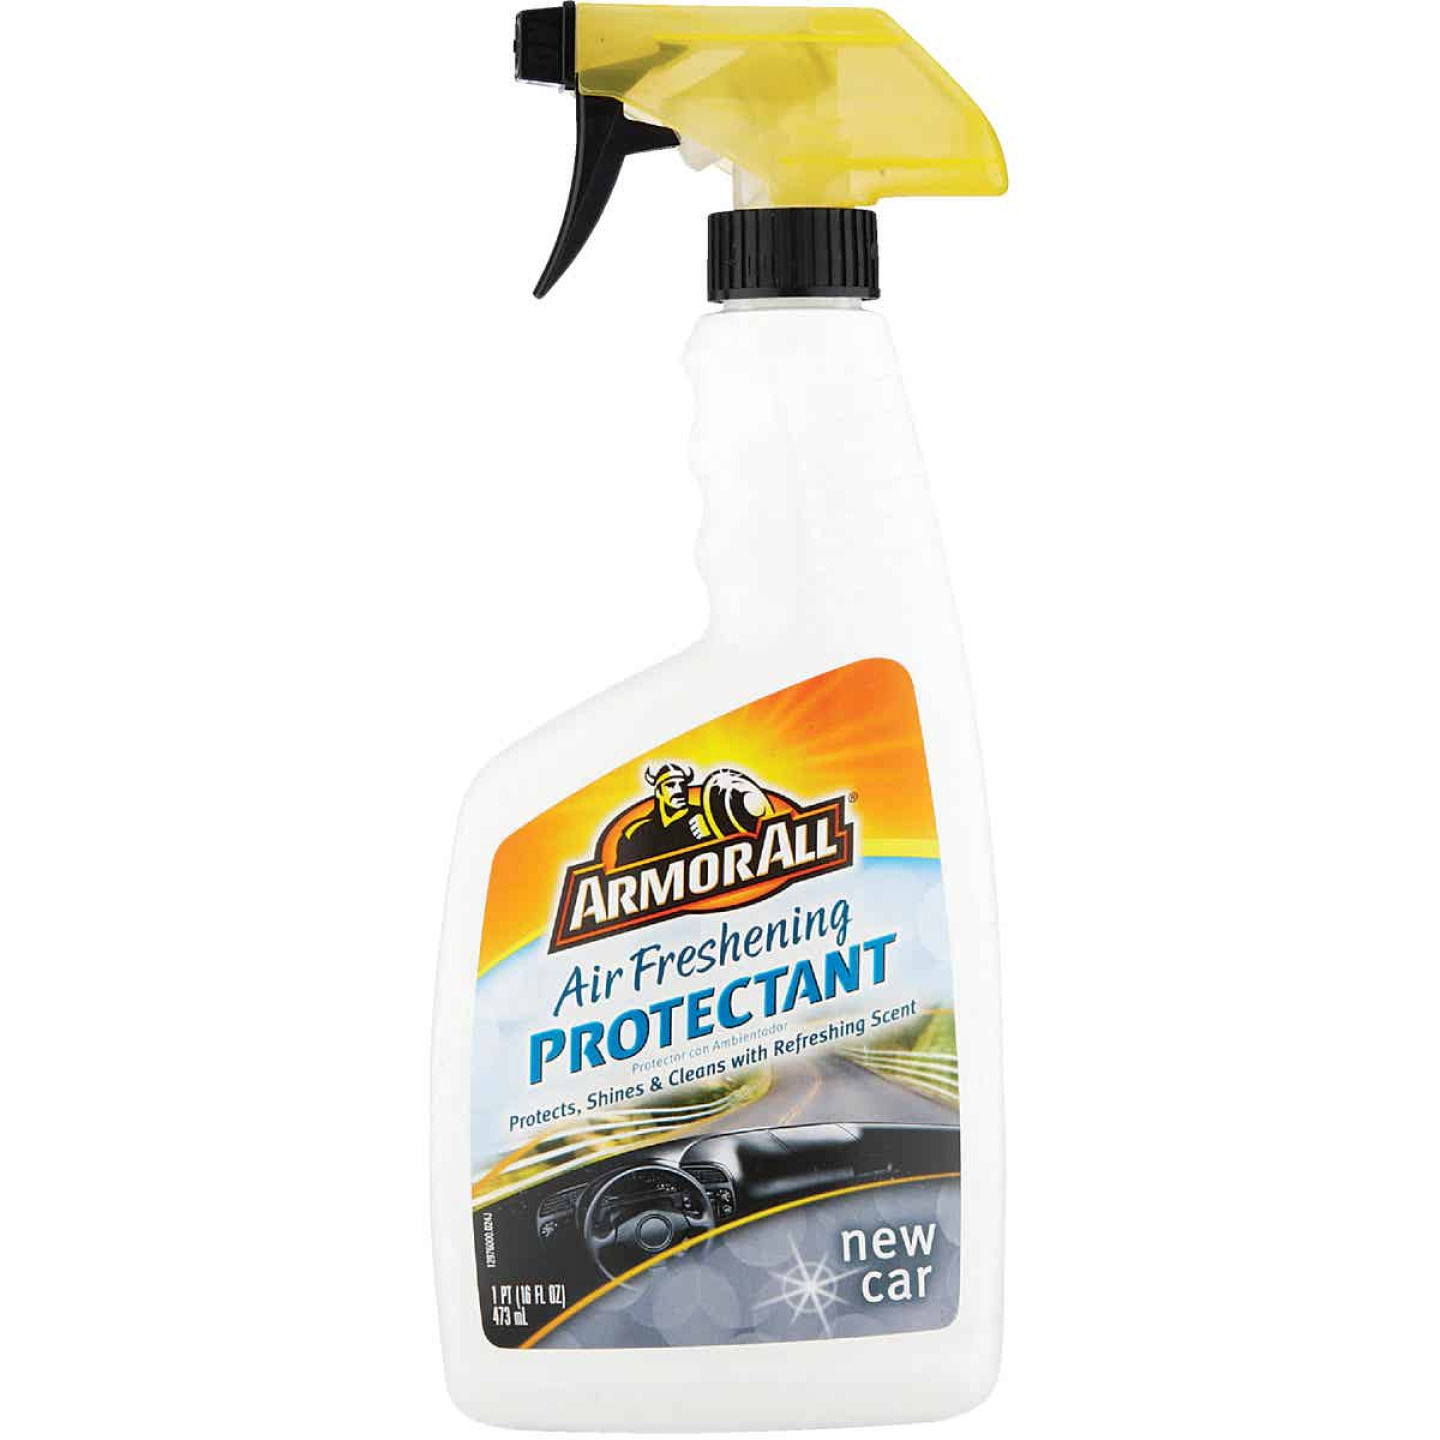 Armor All 16 Oz. Pump Spray Air Freshening Protectant, New Car Scent Image 1